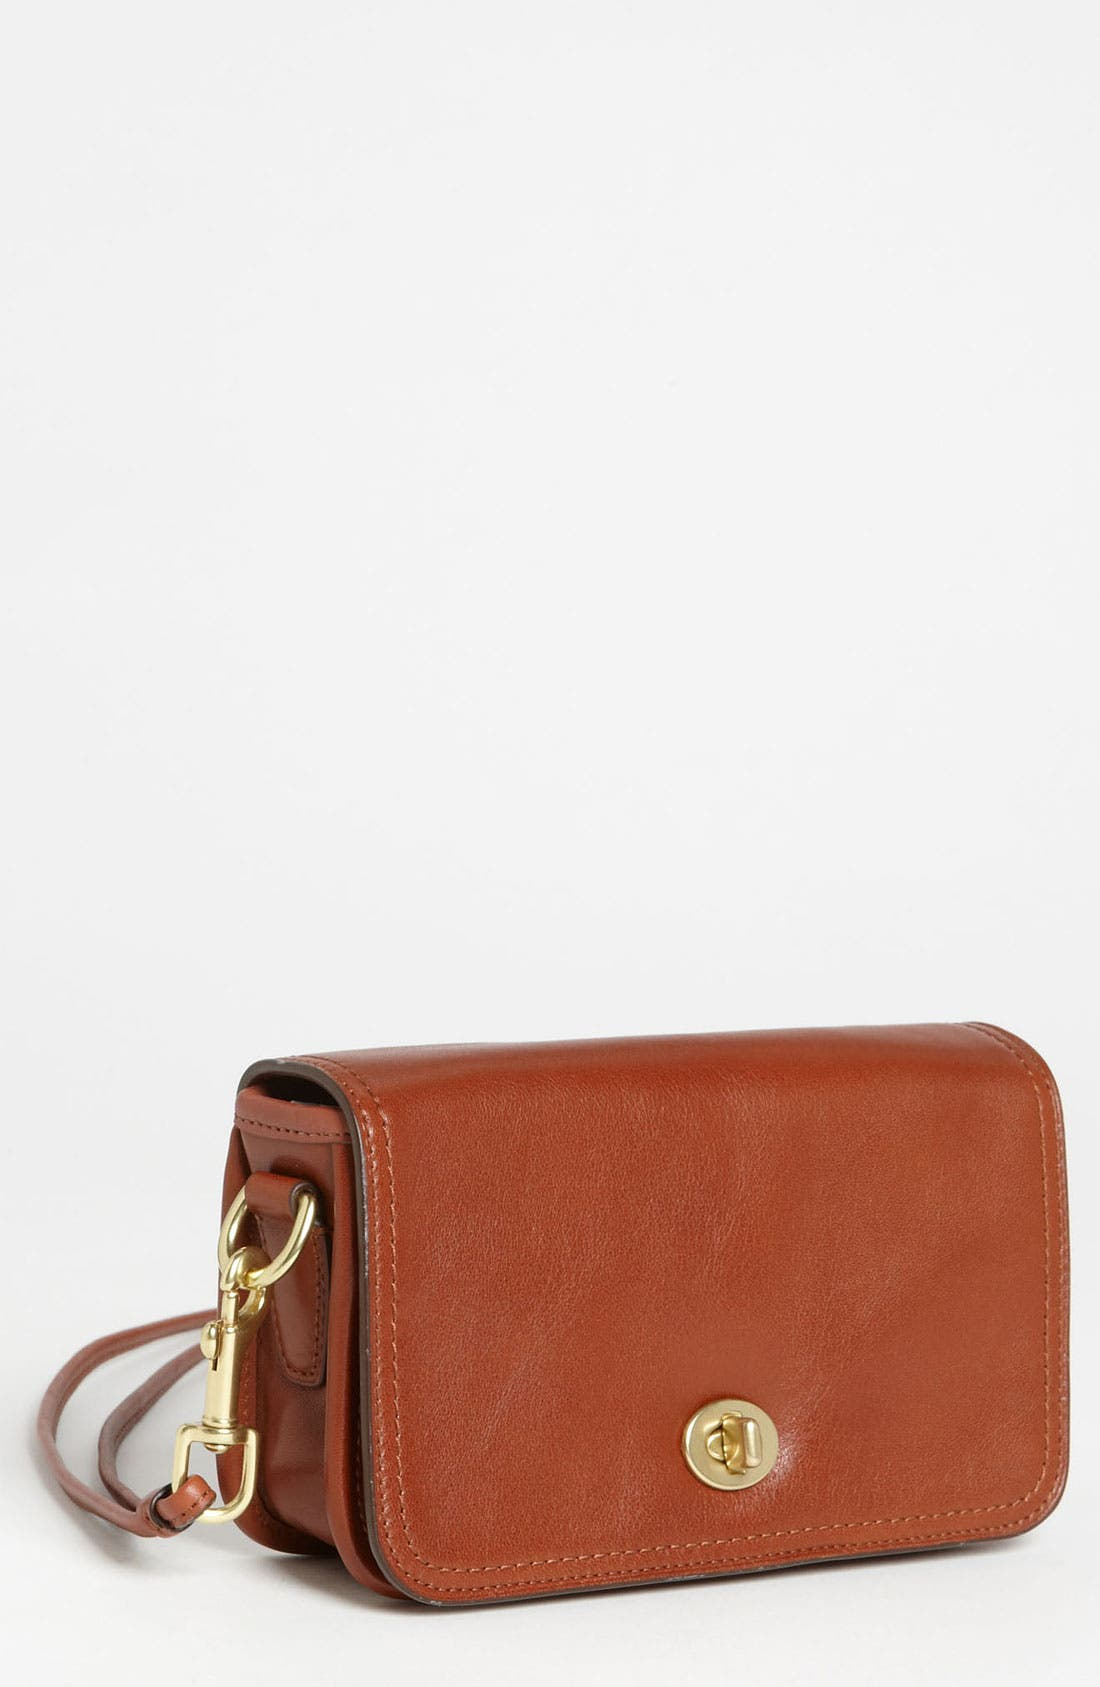 Alternate Image 1 Selected - COACH Leather Crossbody Bag